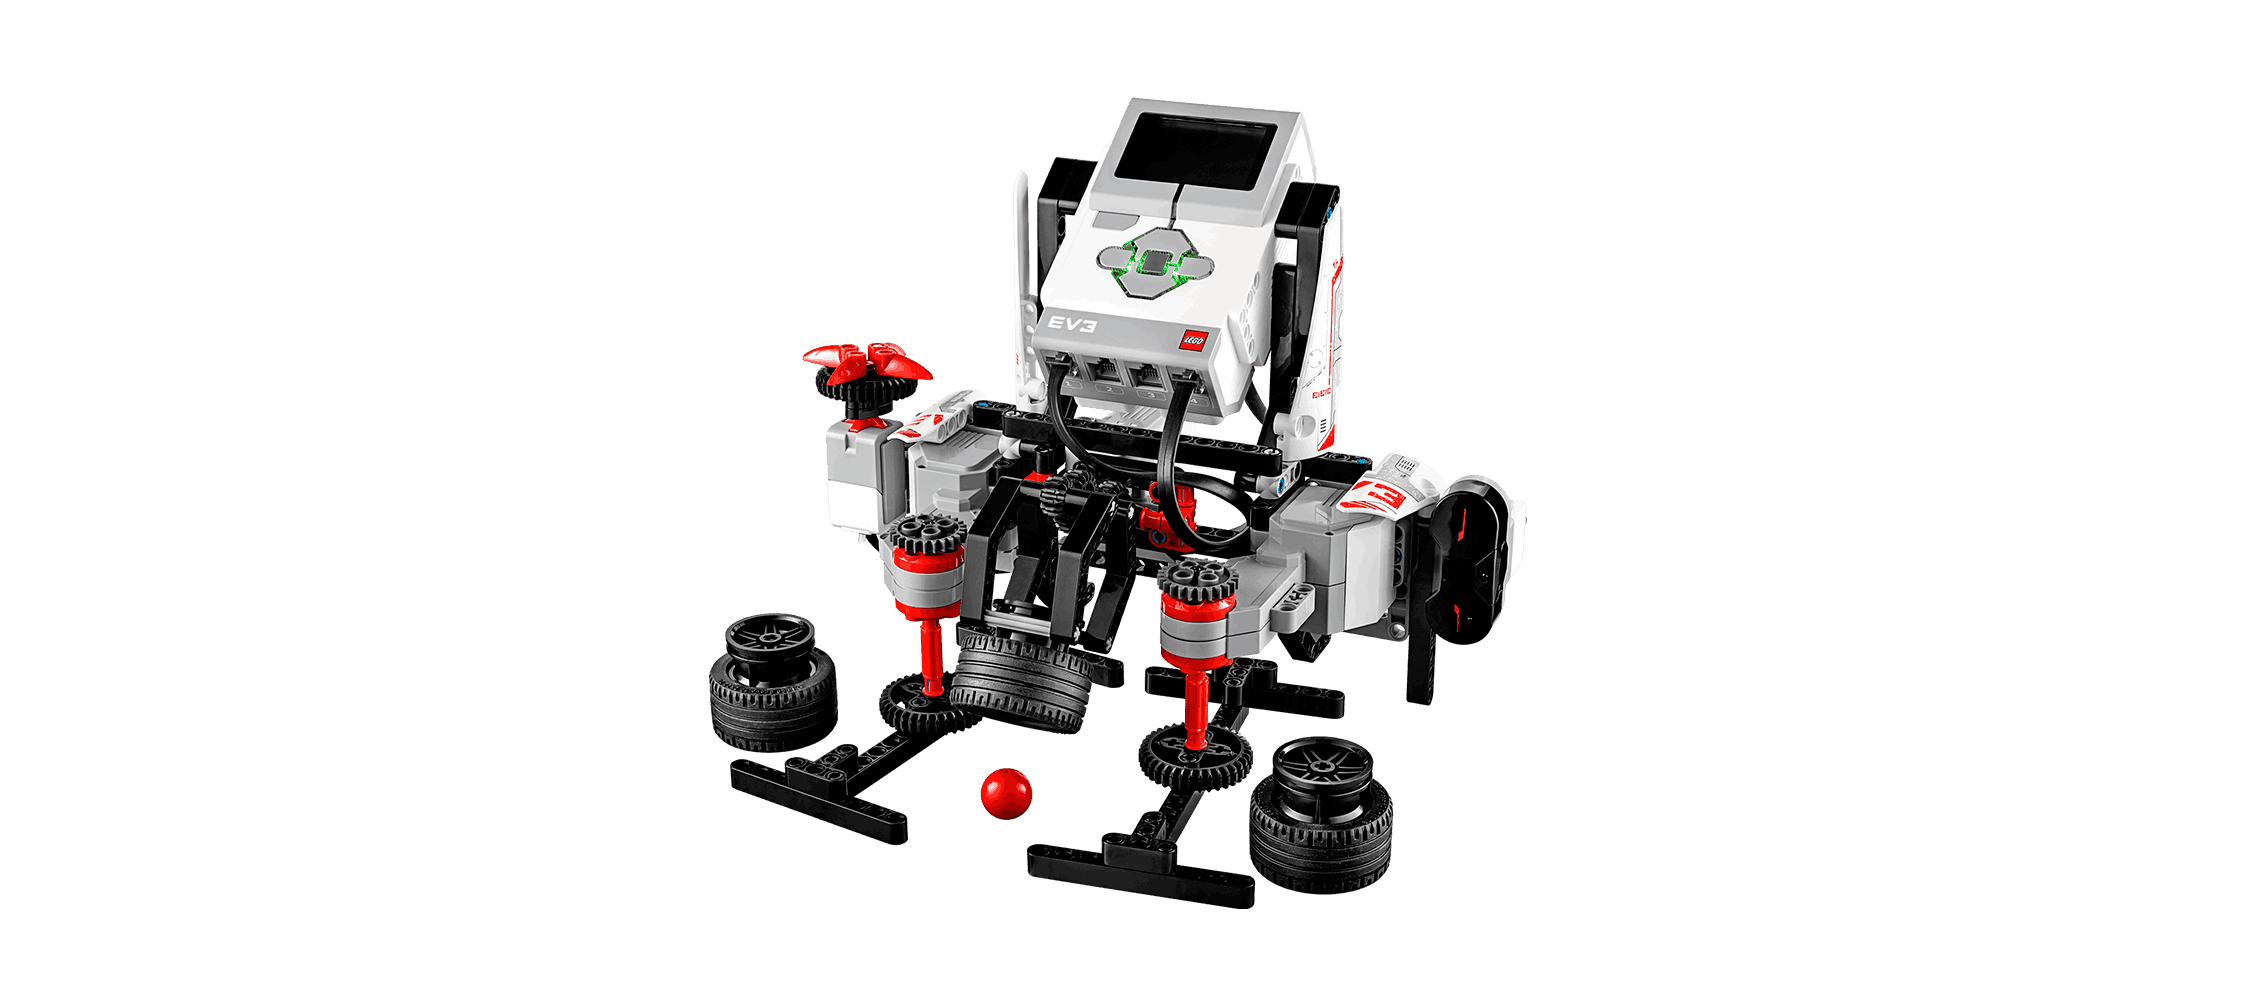 Ev3 Game Build A Robot Lego Mindstorms Lego Com Build A Robot Lego Mindstorms Robot Design